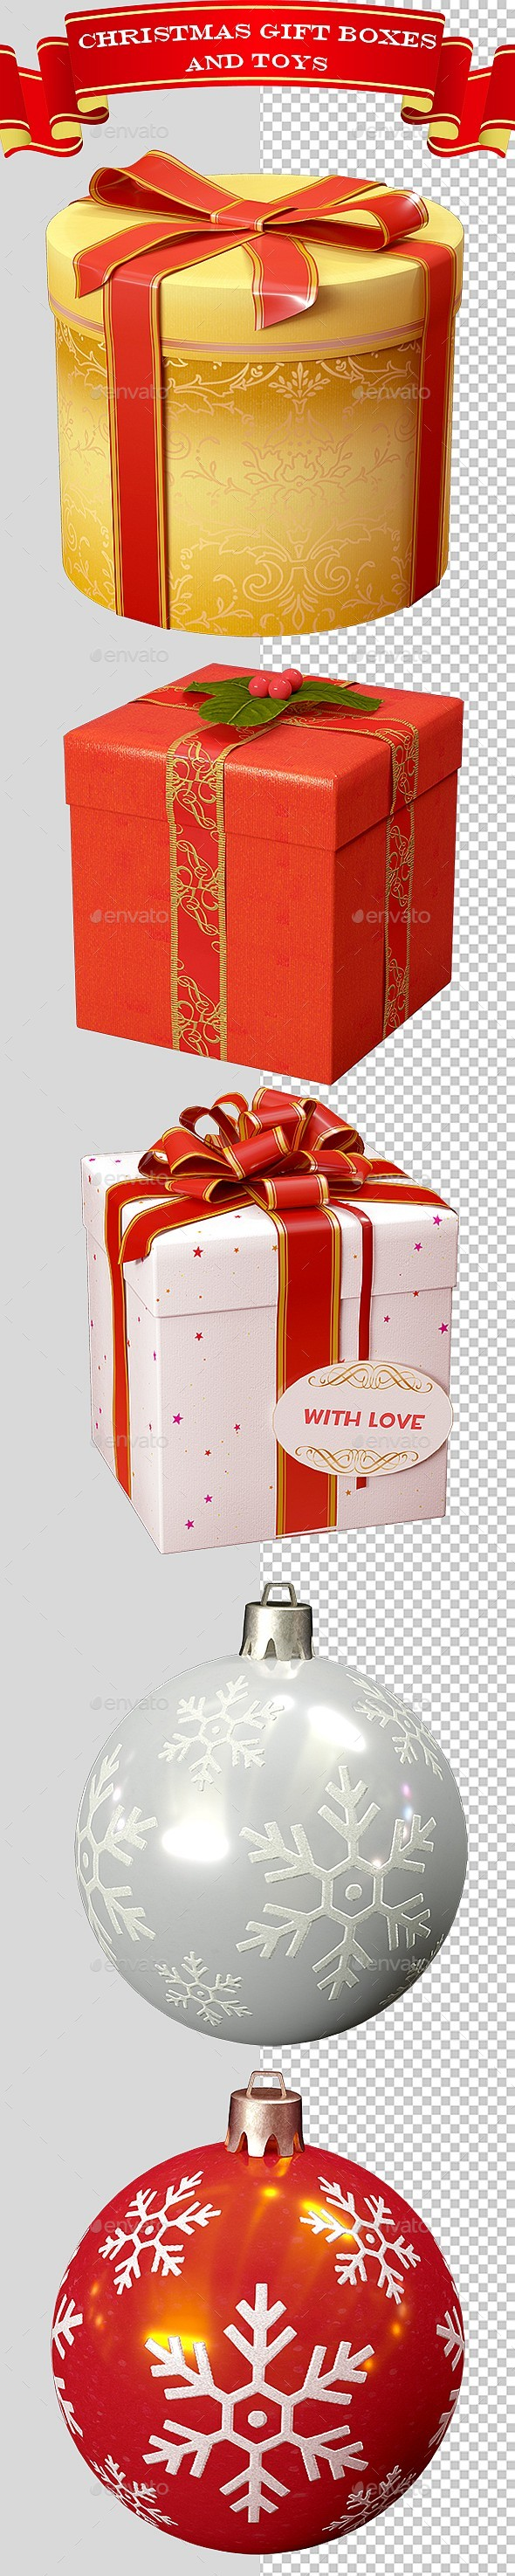 3D Christmas Gift Boxes and Toys Ver.1 - Objects 3D Renders